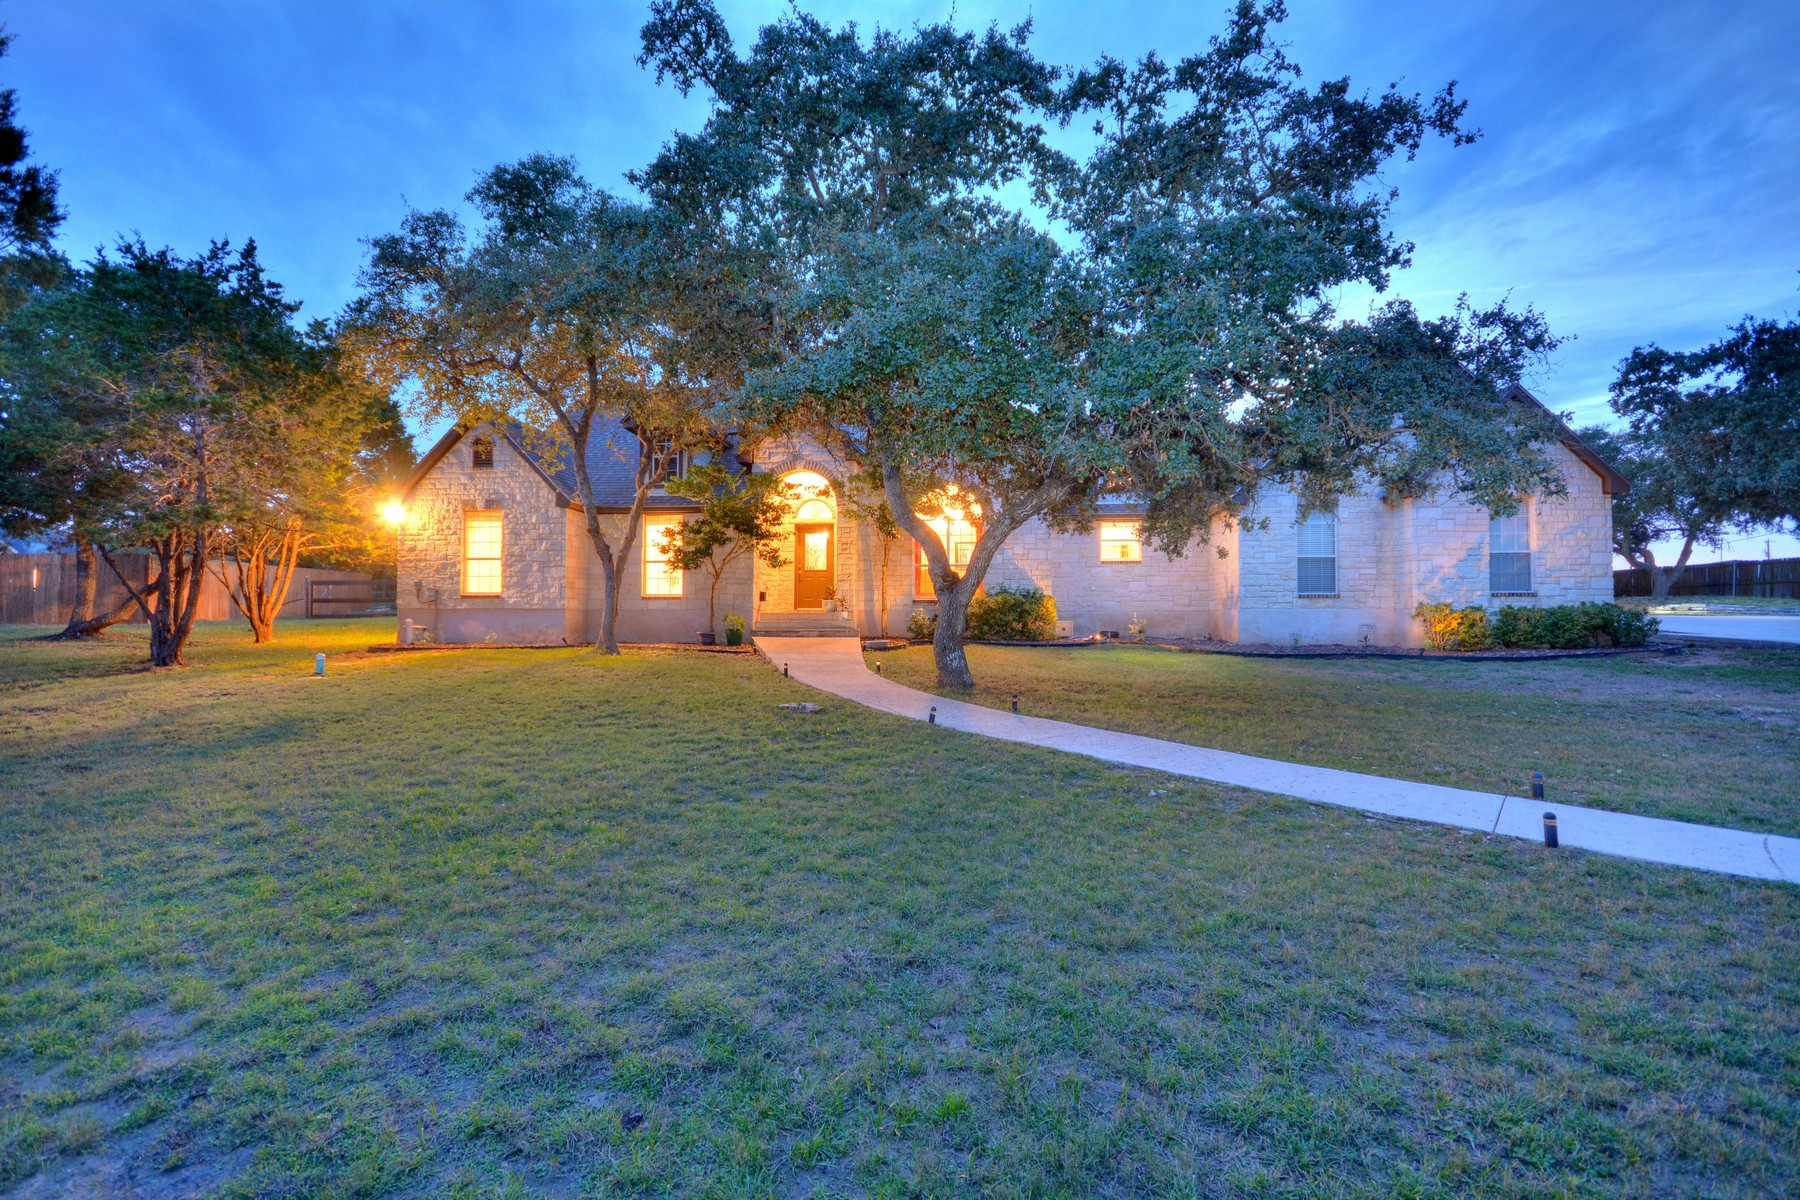 Single Family Home for Sale at Dripping Springs Beauty 1000 Sunset Canyon Dr Dripping Springs, Texas 78620 United States